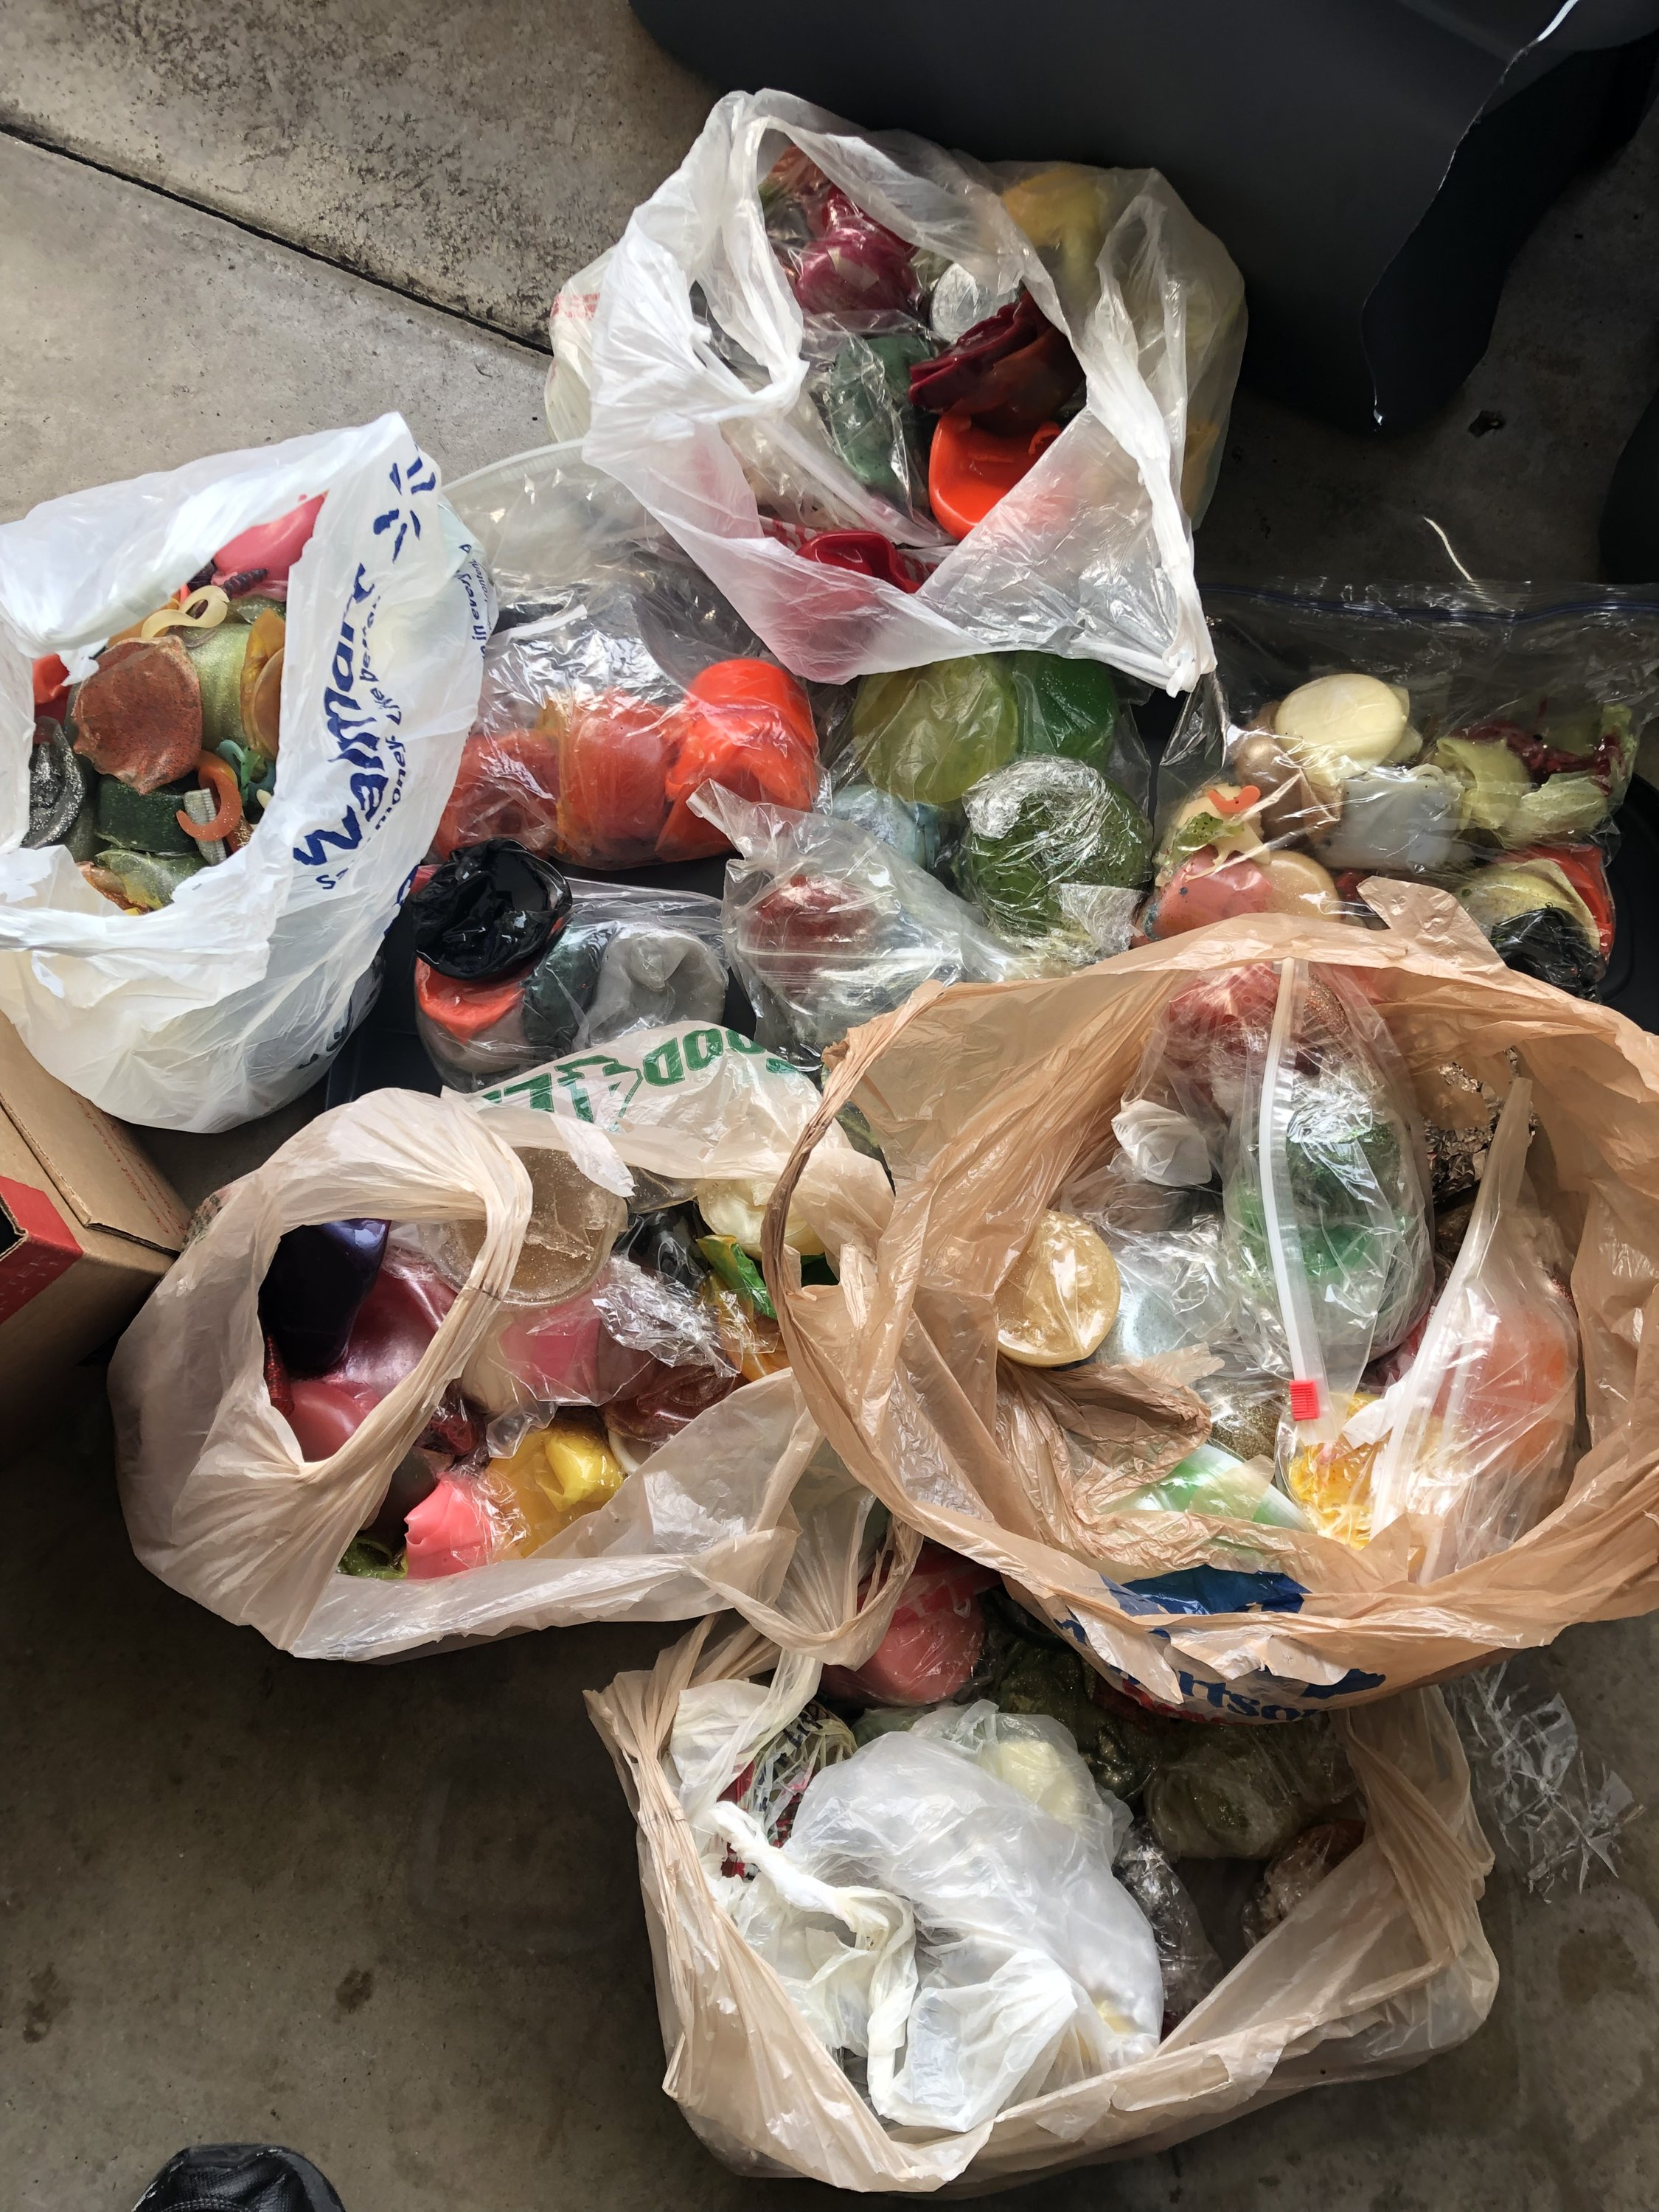 For Sale - Scrap plastic for pouring baits | San Diego Fishing Forums